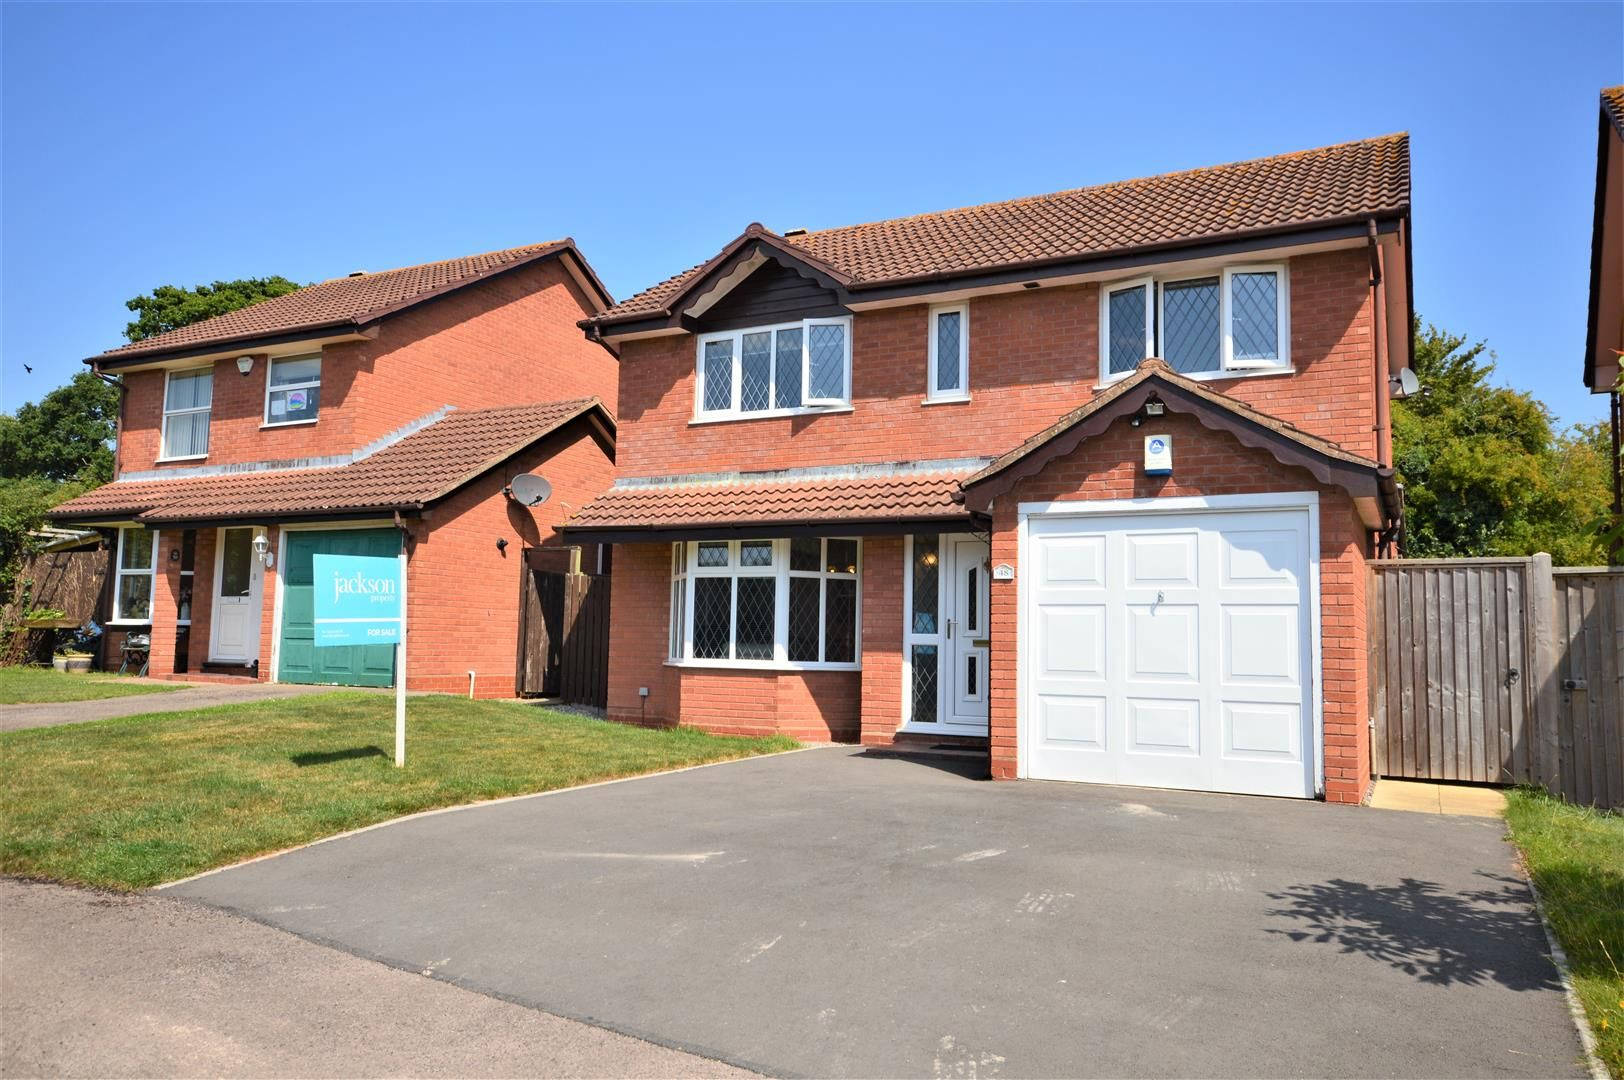 4 bed detached for sale in Hereford, HR1